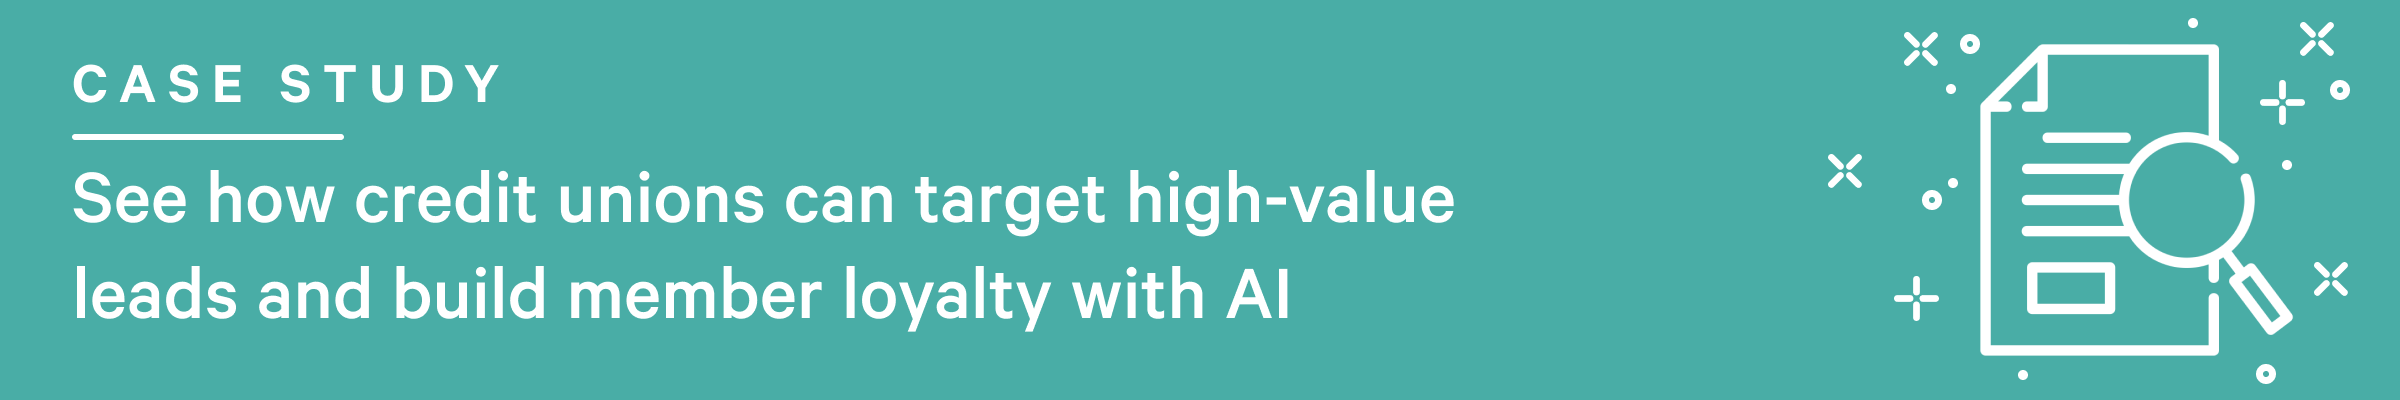 See how credit unions can target high-value leads and build member loyalty with AI